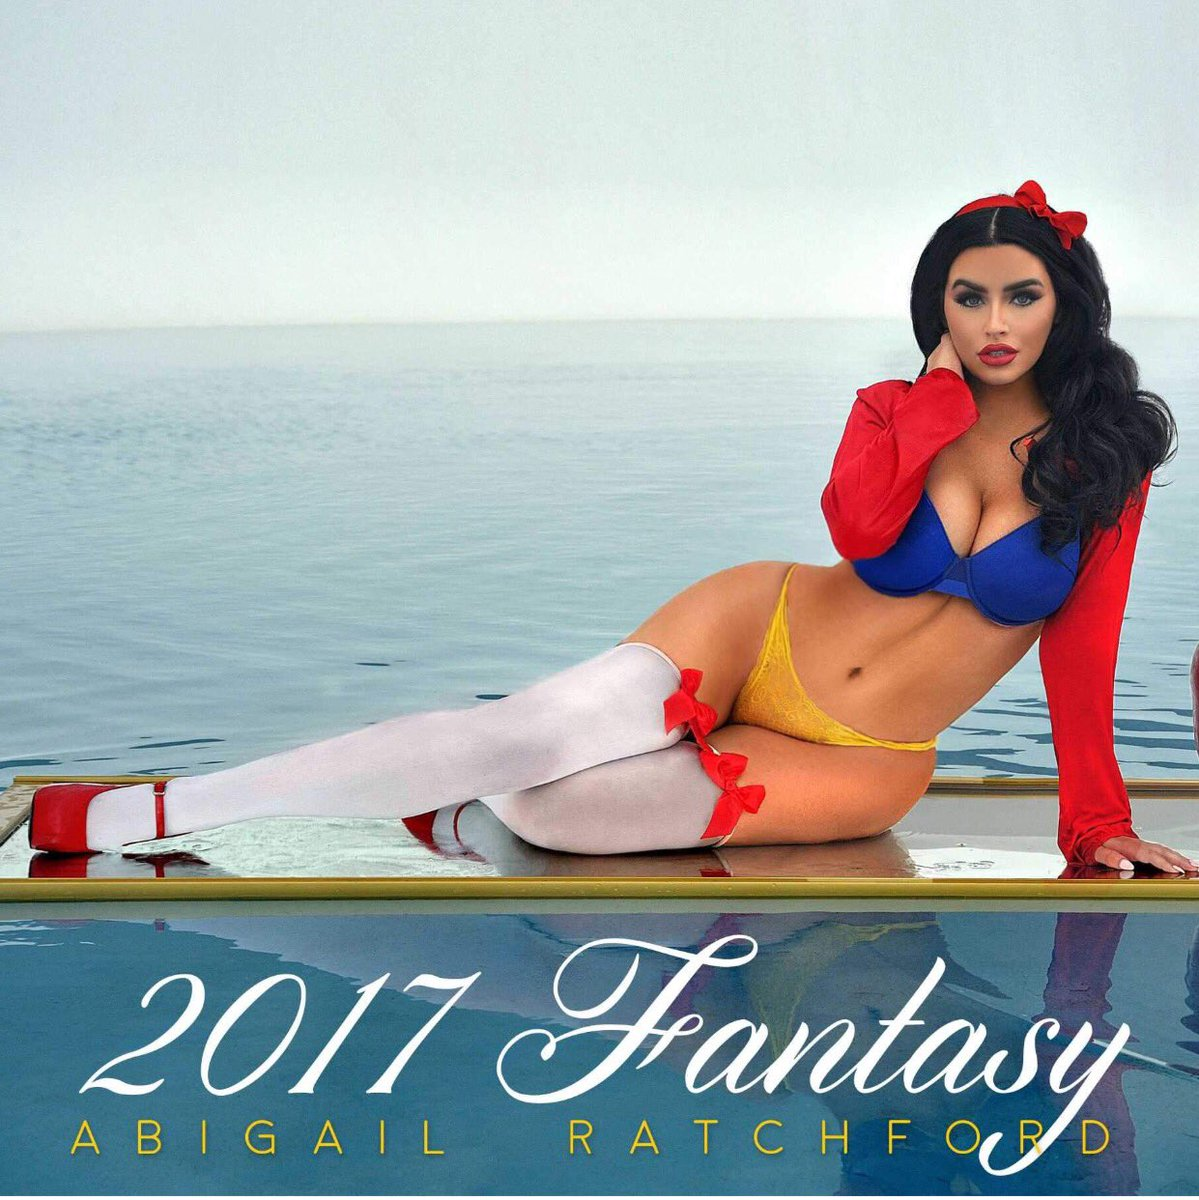 Abigail Ratchford On Twitter My 2017 Fantasy Calendar Is Here